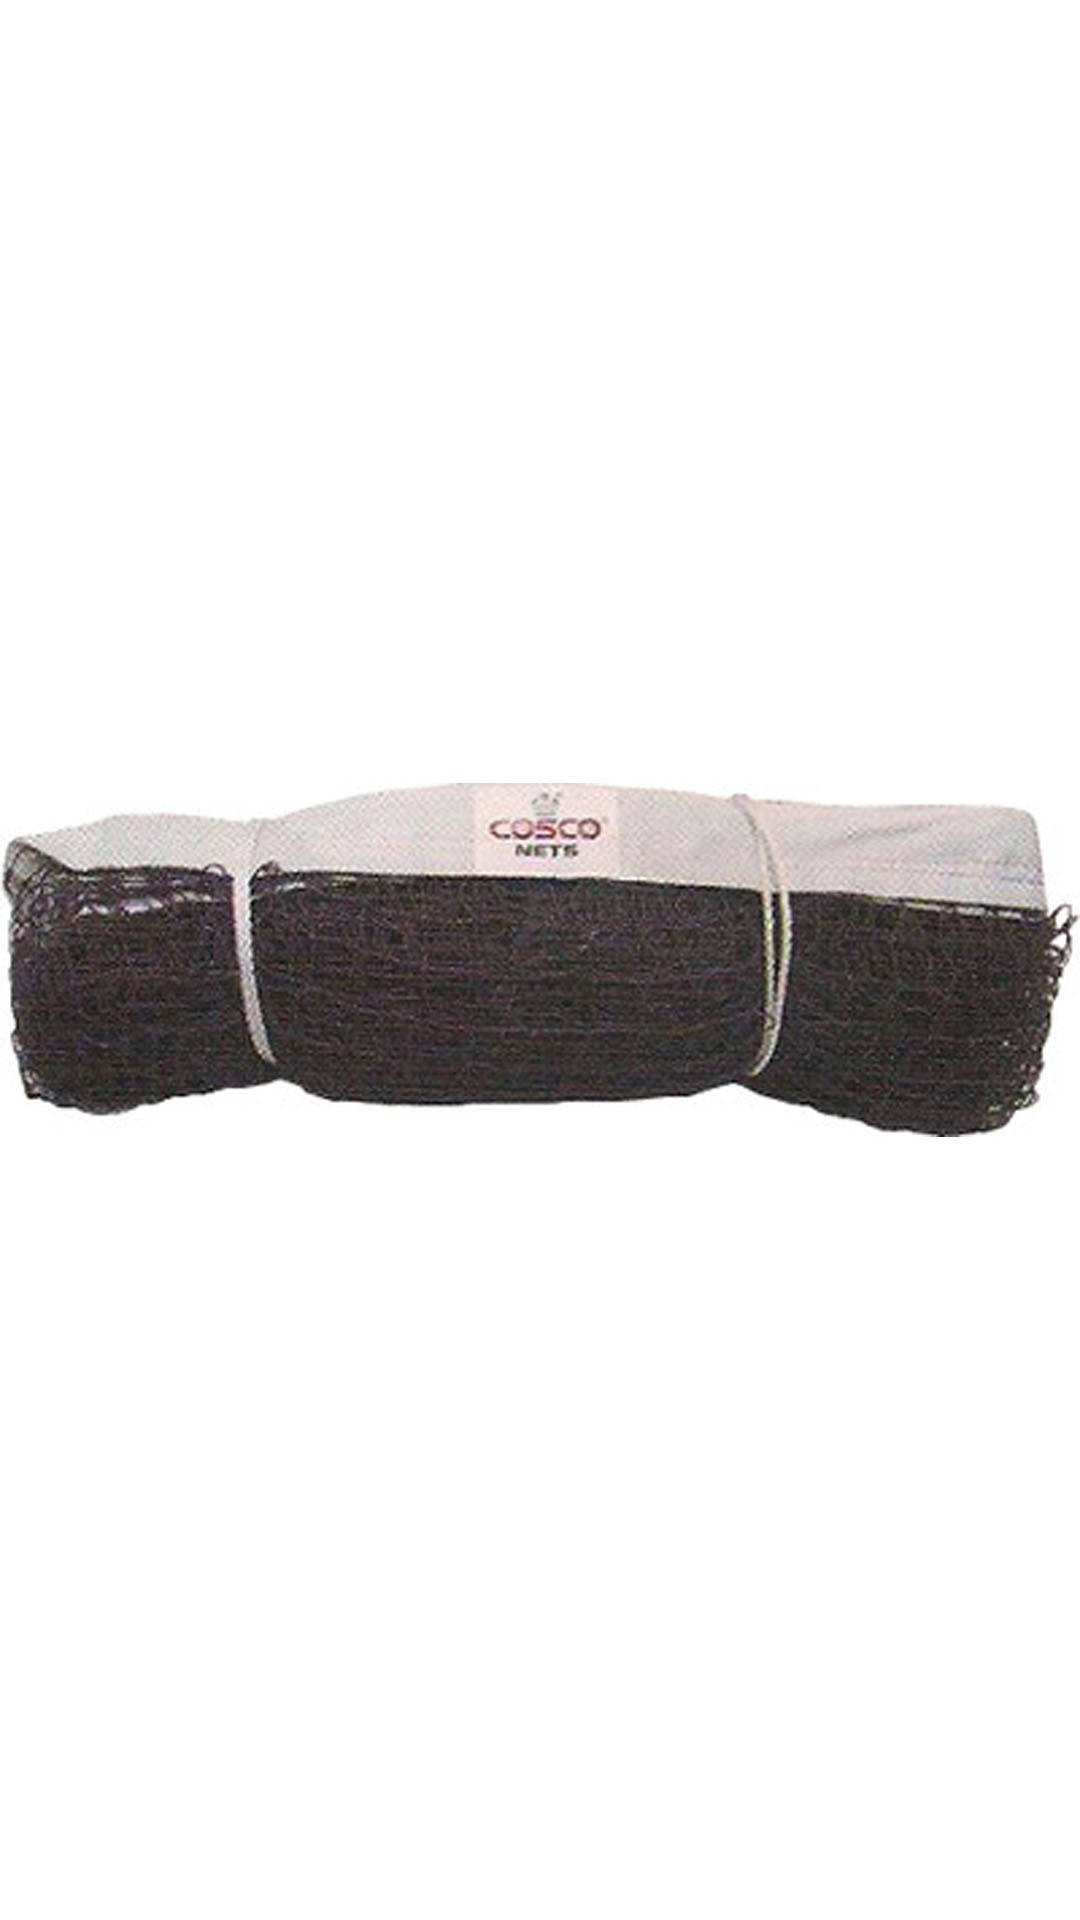 Cosco Volleyball Nylon Net